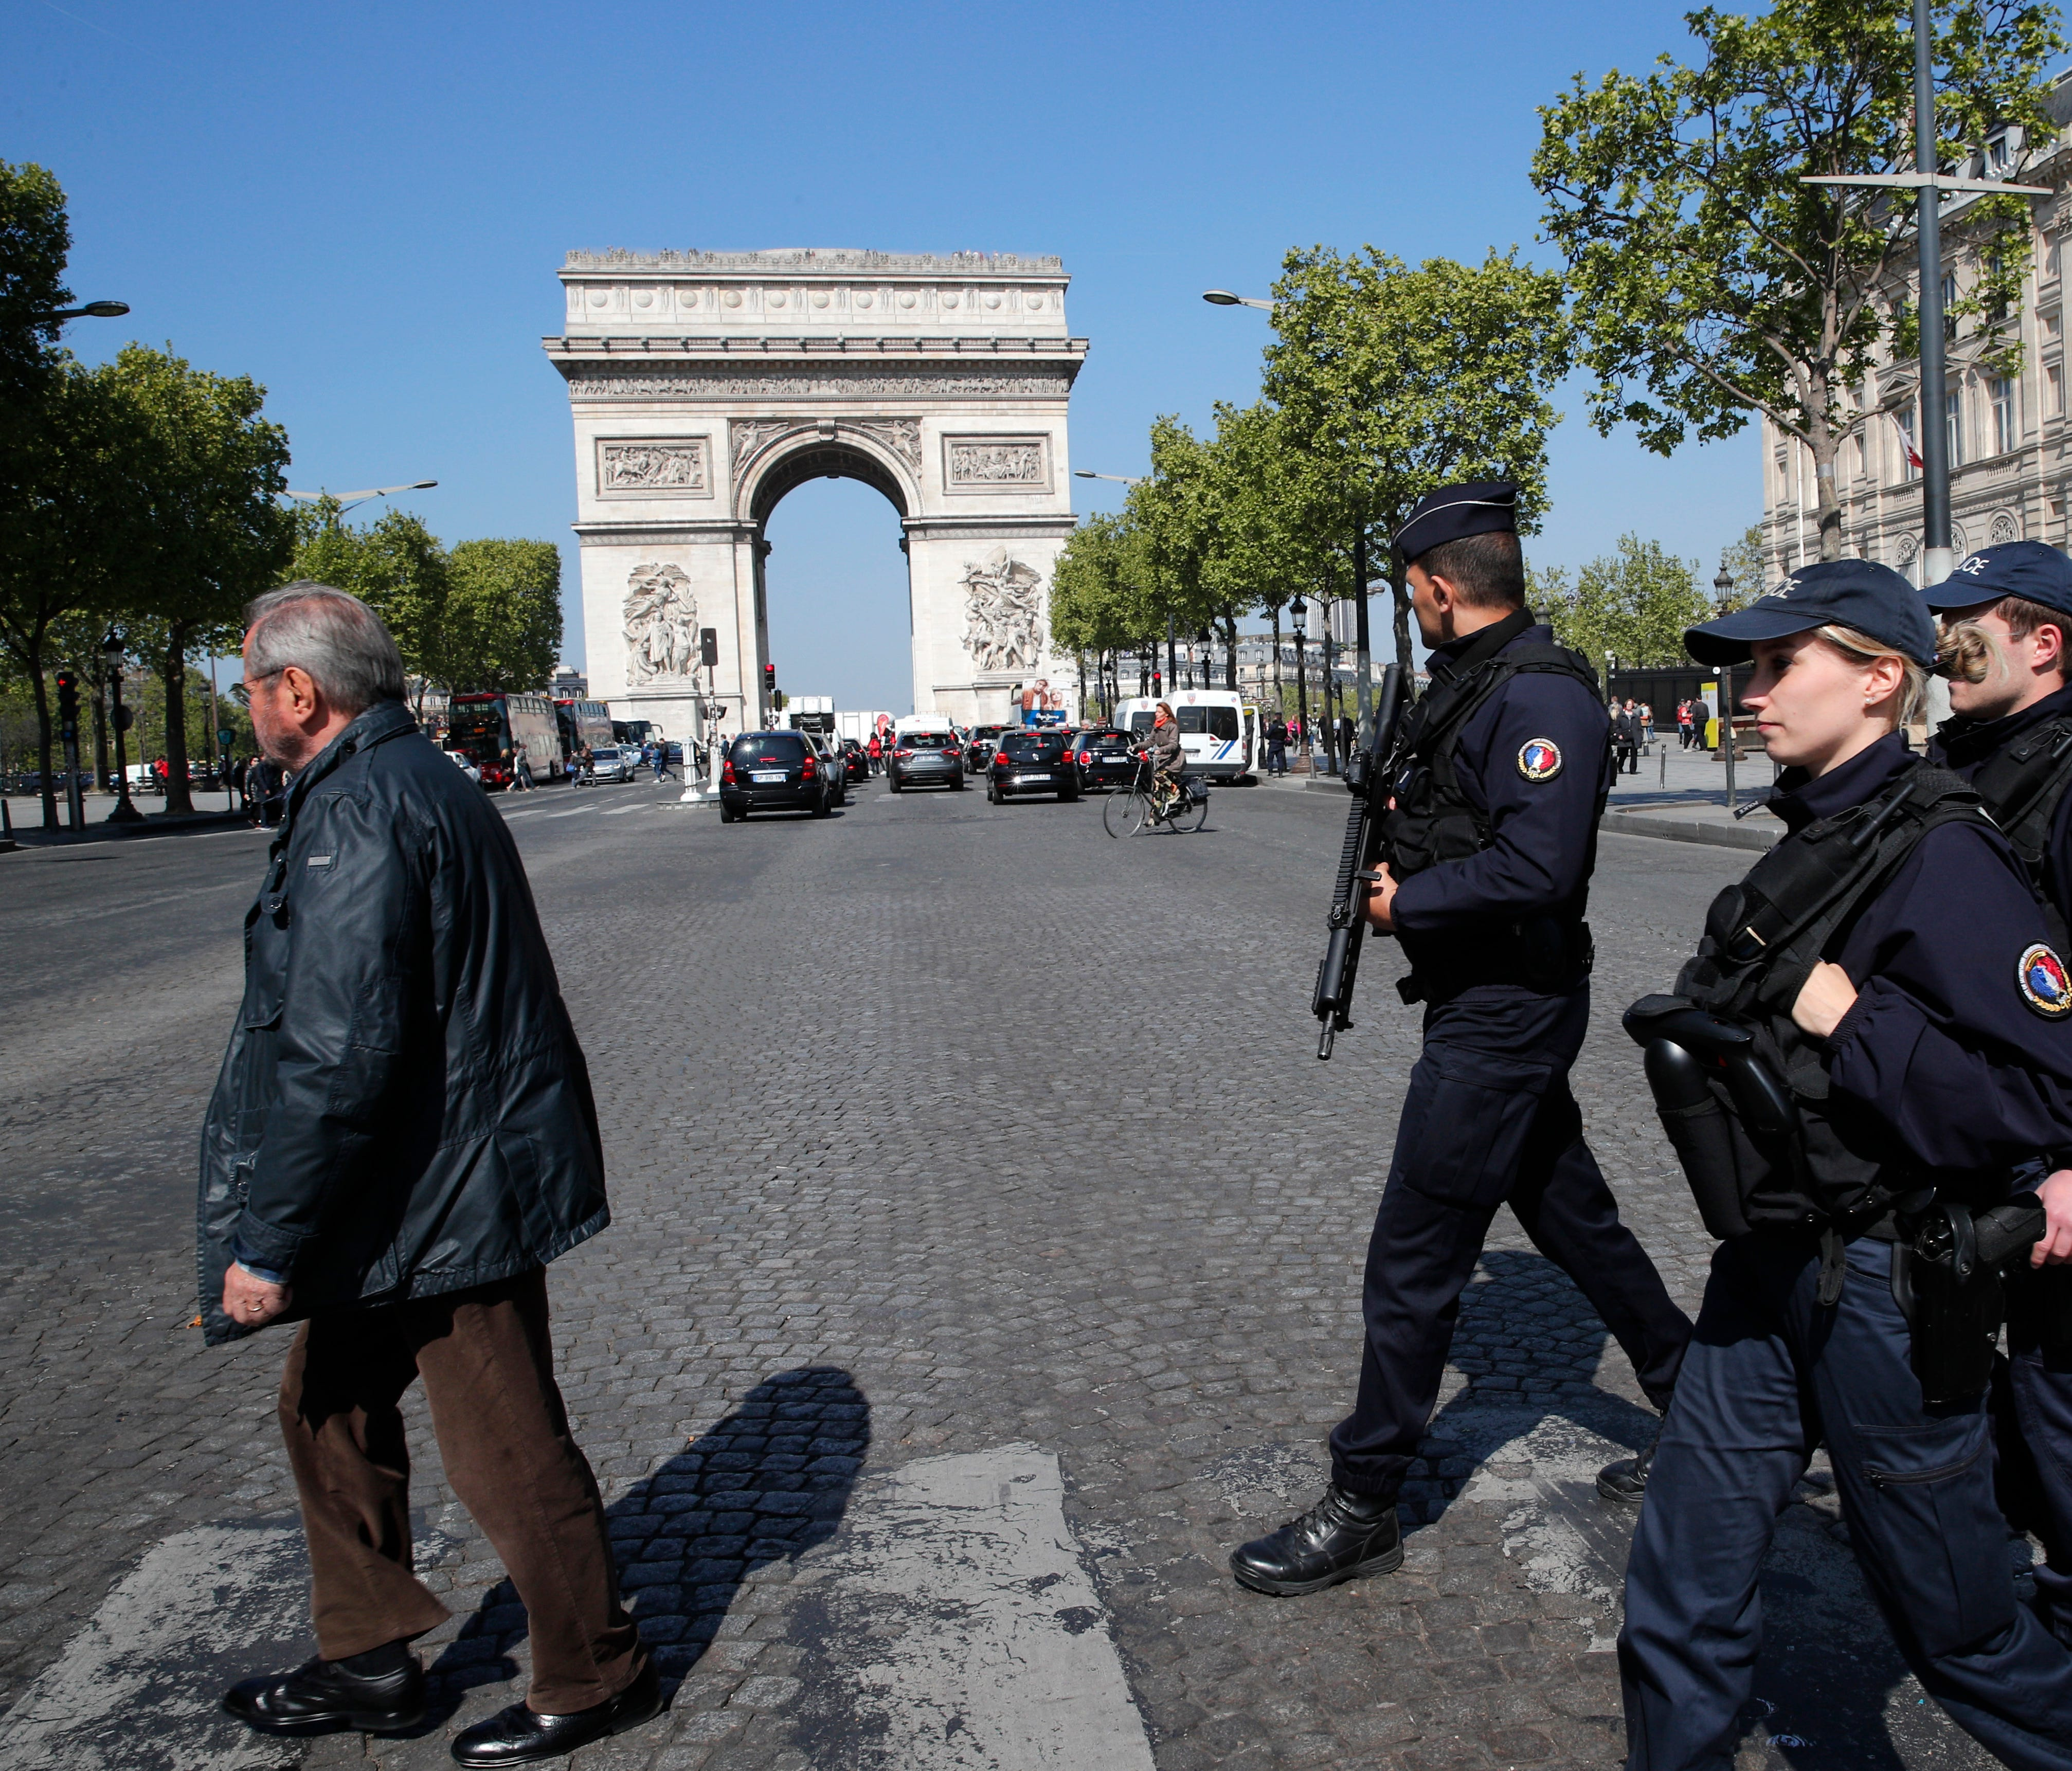 Police officers patrol on the Champs Elysees boulevard in Paris, Friday, April 21, 2017.